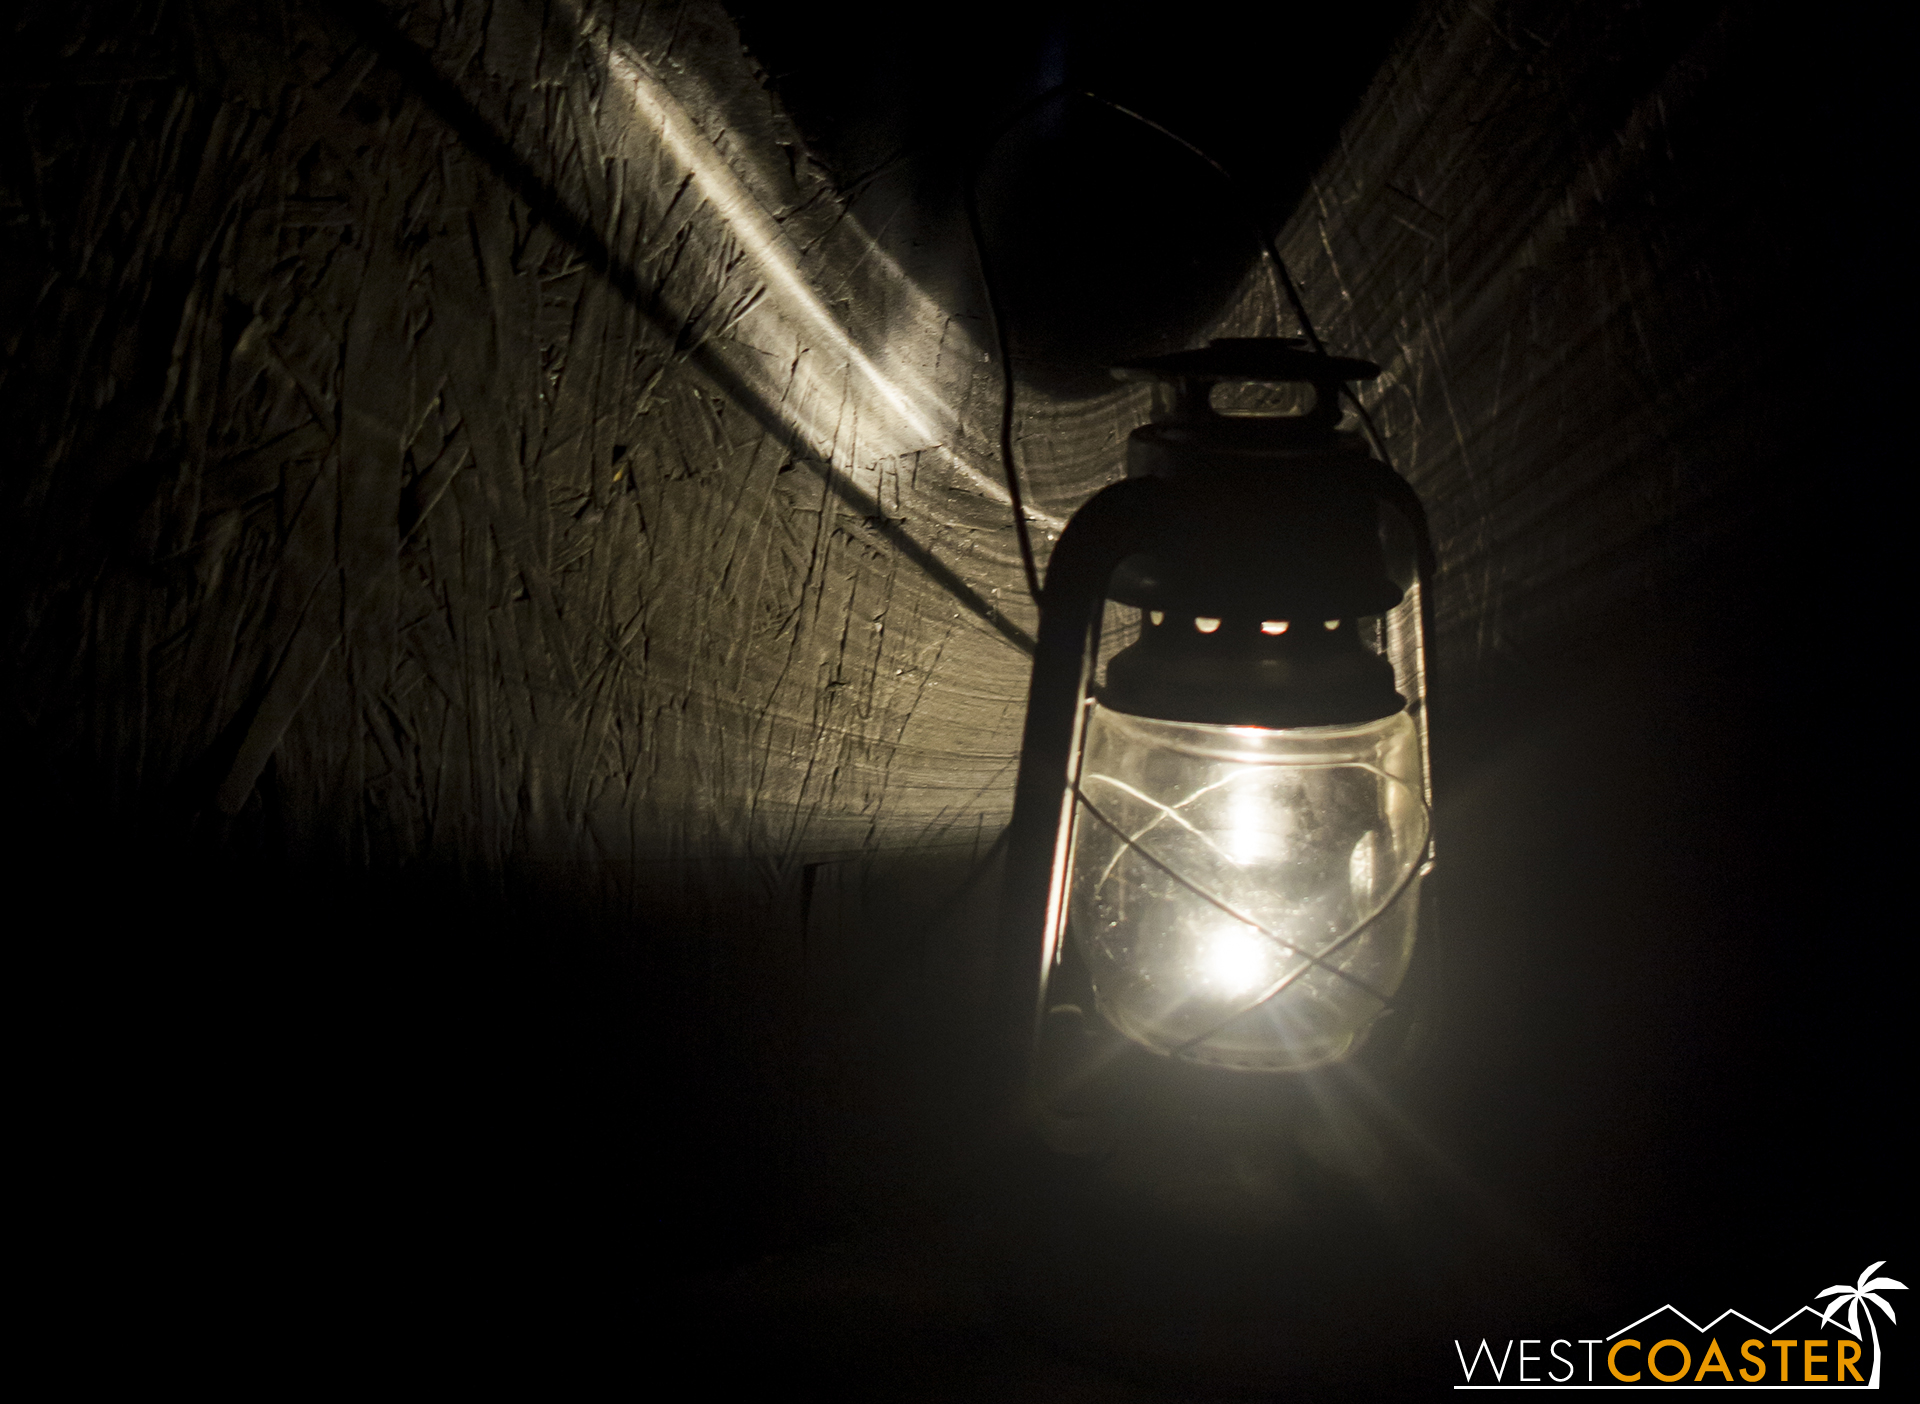 After guests escaped, they went through the final portion of the maze, a blackout segment, lit only by a dim lantern.